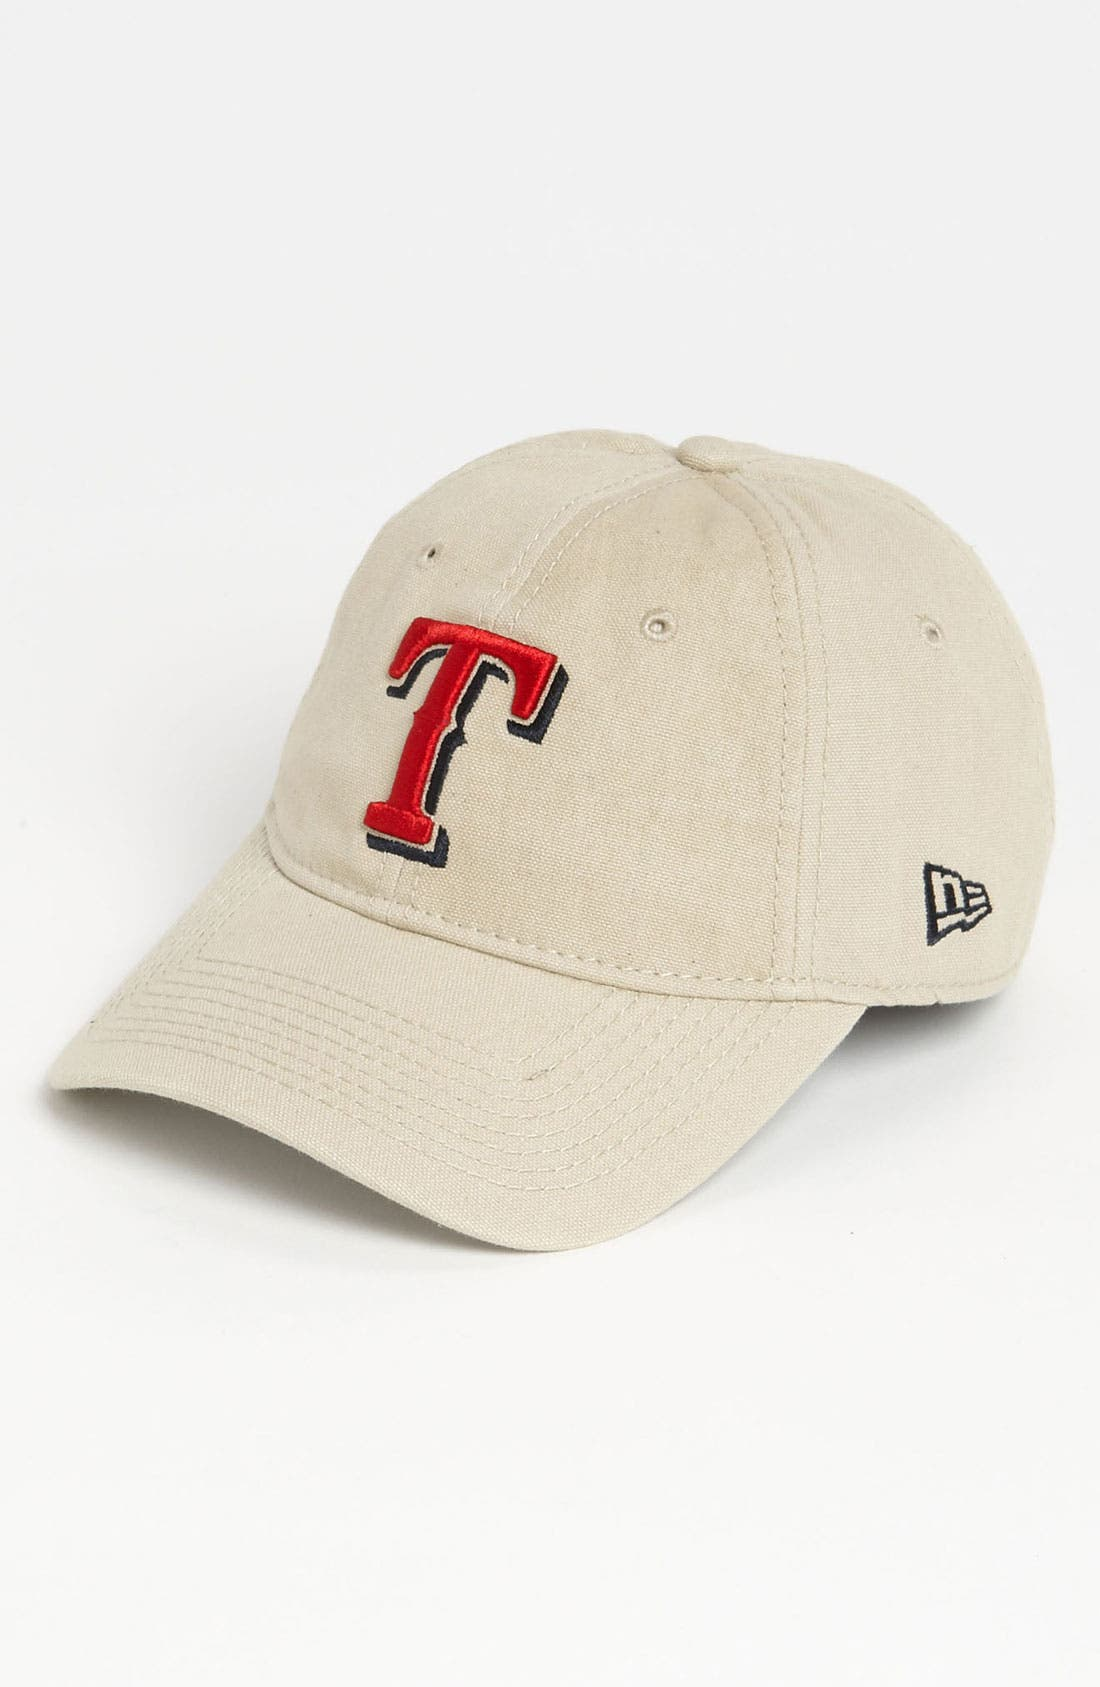 Alternate Image 1 Selected - New Era Cap 'Shoreline - Texas Rangers' Baseball Cap